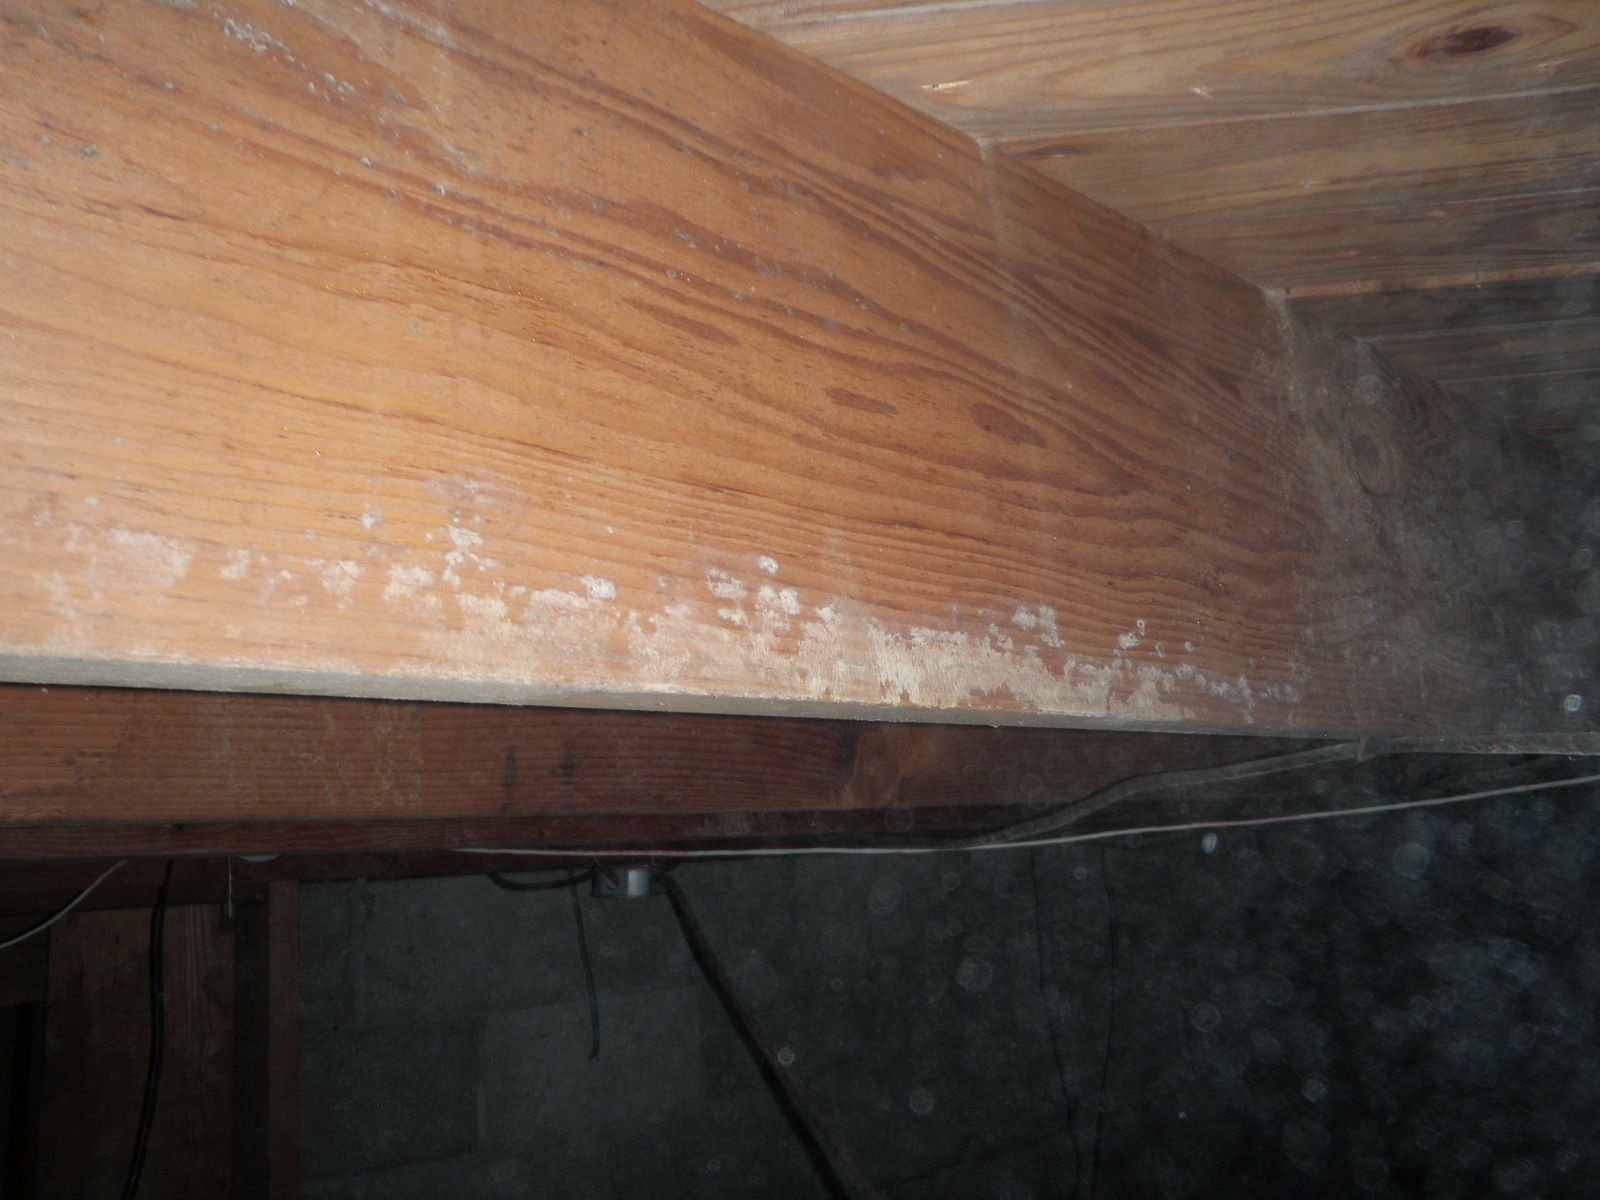 Best Of Mold On Wood In Basement